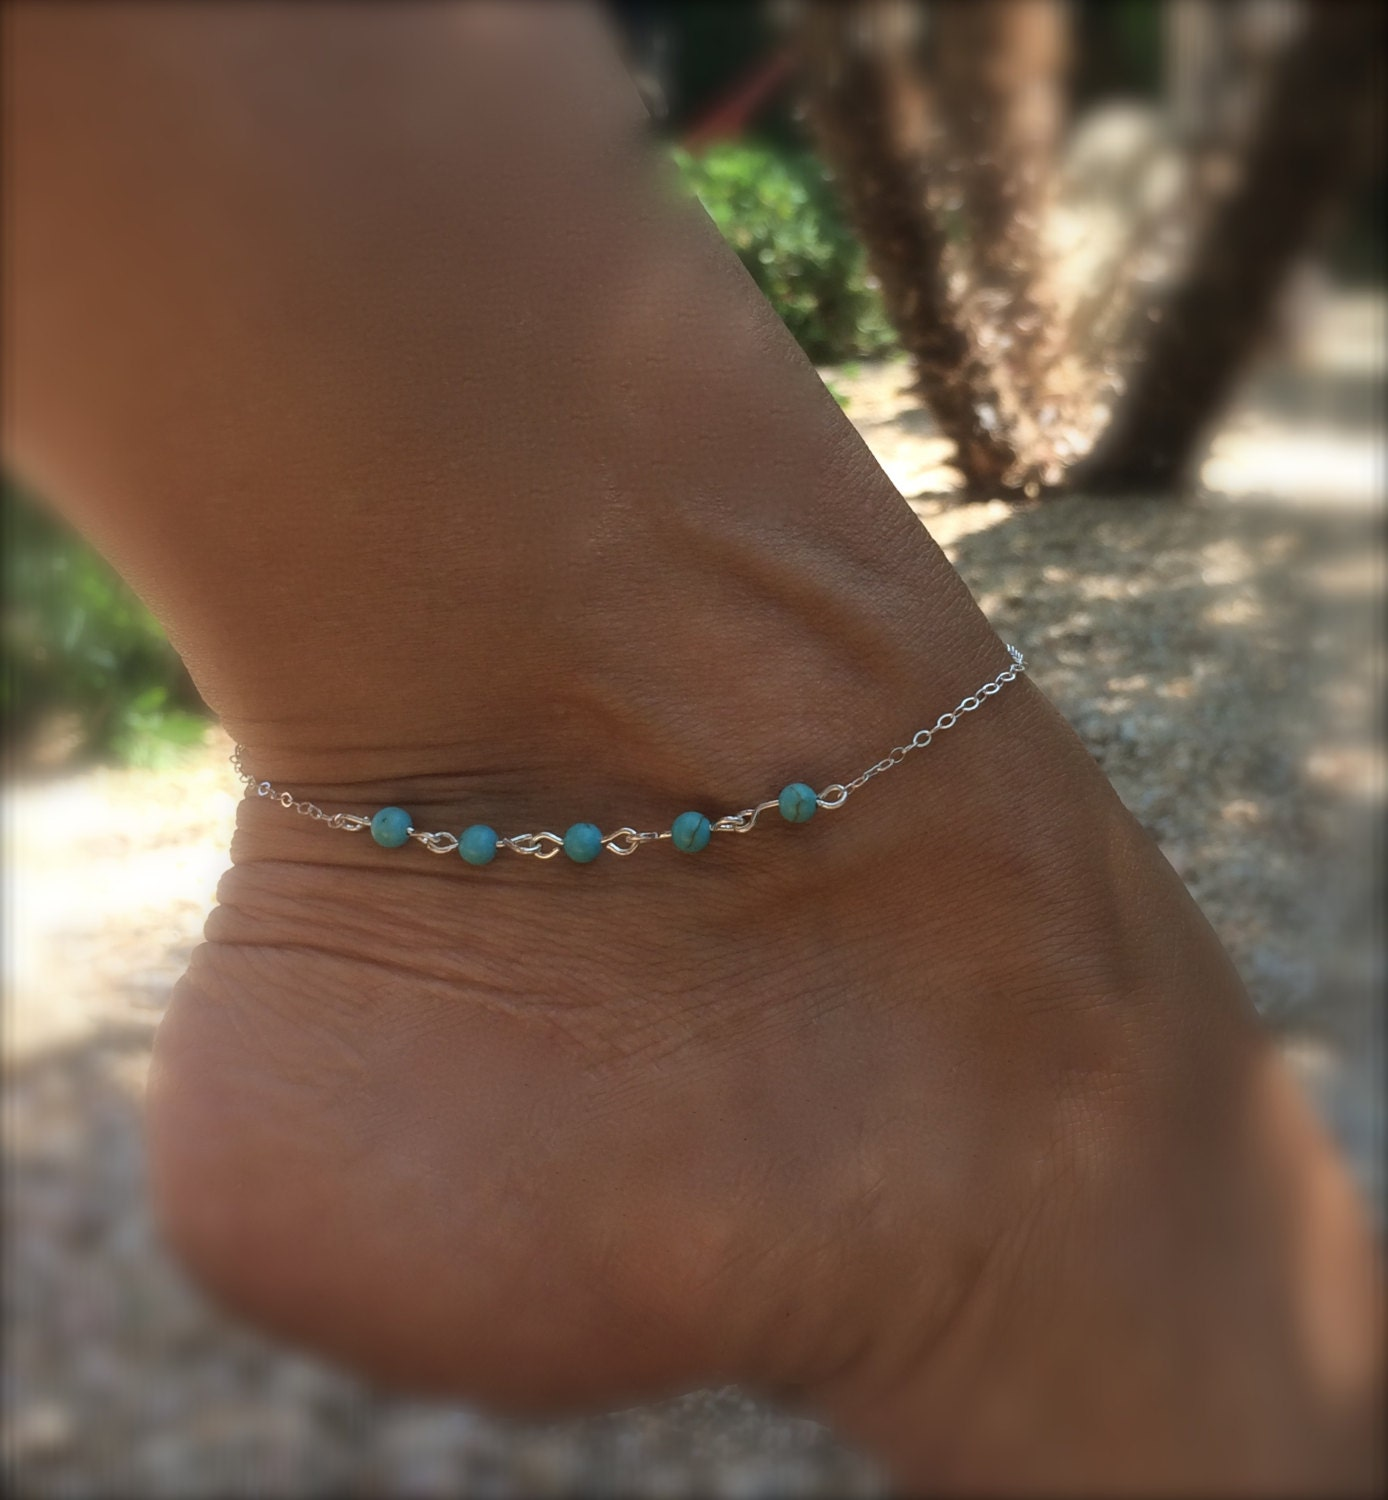 jewelry s ankle inch collections enamel sterling rolo charm gold i steel where heart ion daisy wholesale products with silver model anklet plated can stainless chain bracelets photo g buy w and adornment bracelet